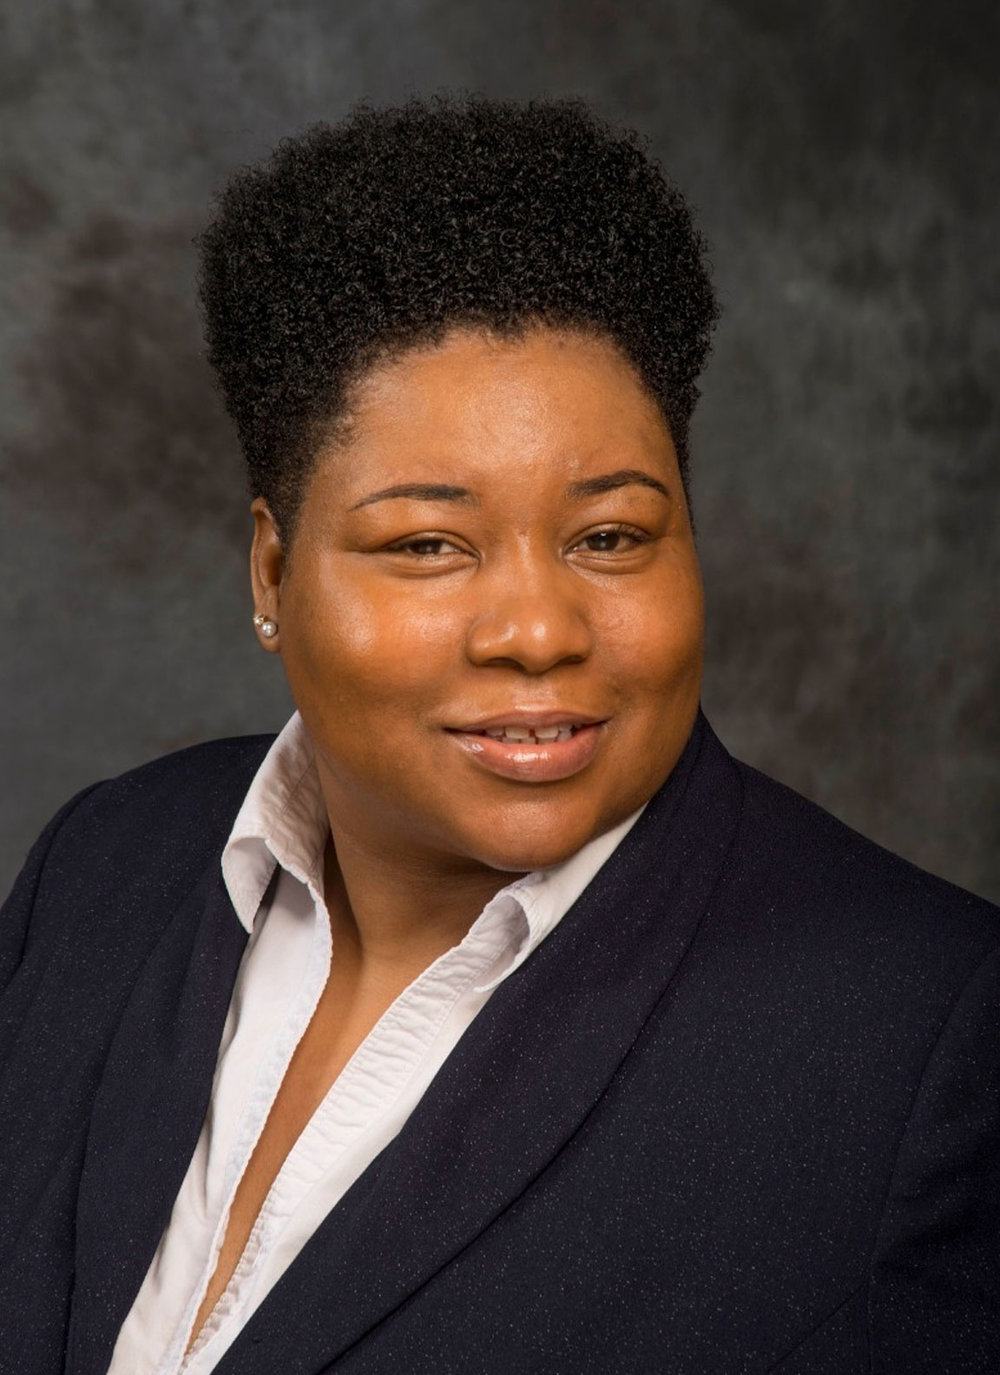 Jeanette B. Taylor - Came in first place with 29.0% of the vote.More on Jeanette B. Taylor here.